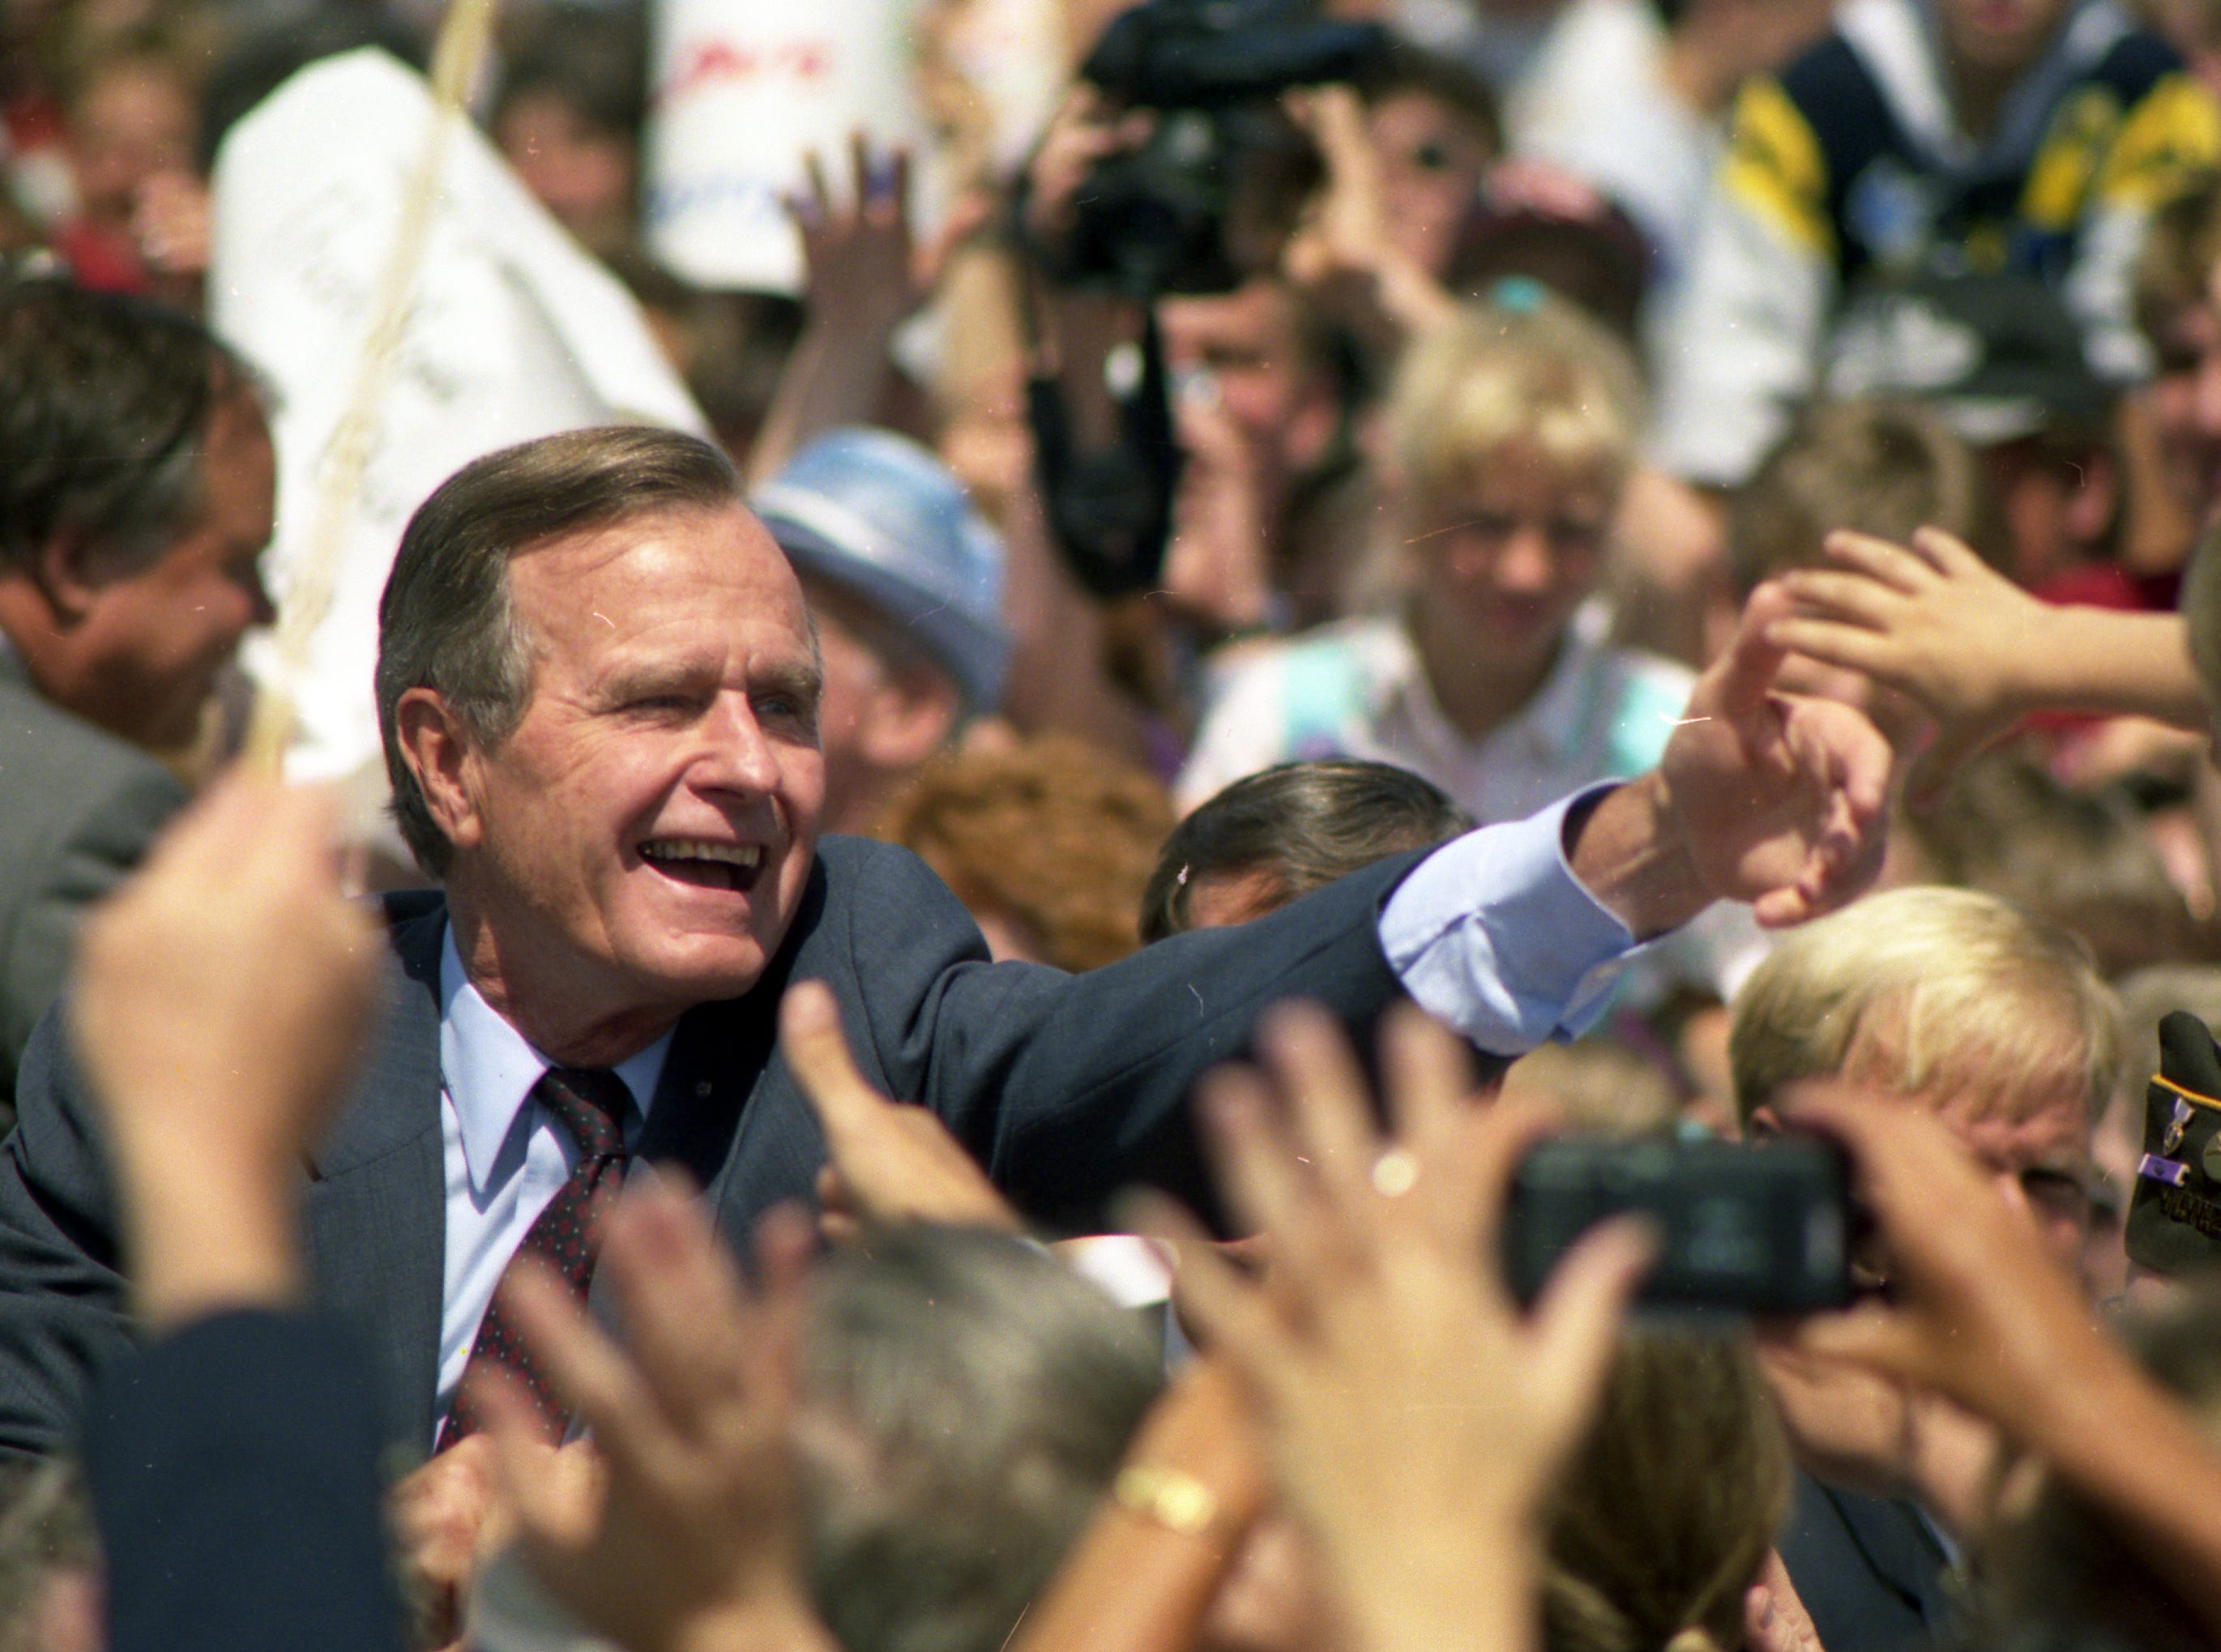 July 27, 1992. President George H. W. Bush spread a Republican campaign message in the Fox Cities and took time to greet some of the thousands of well-wishers at the Outagamie County Airport. Post-Crescent photo by Mark Courtney